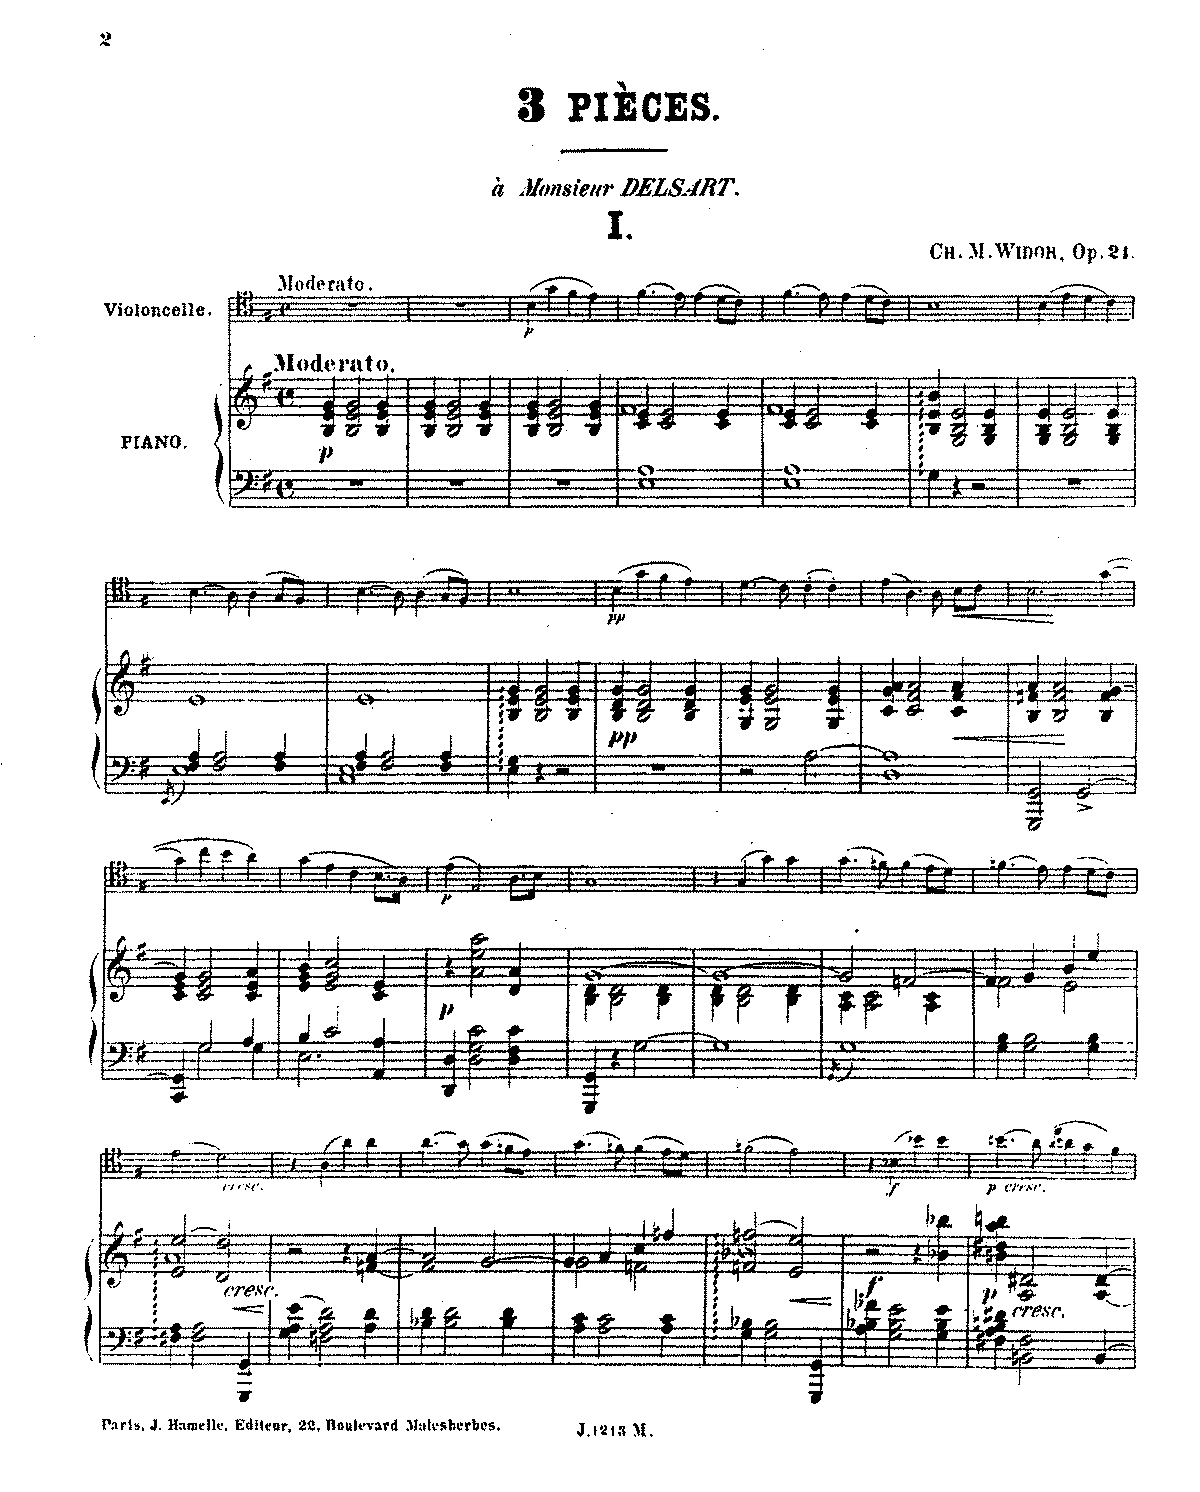 PMLP112162-Widor - 3 pièces, Op. 21 (cello and piano).pdf